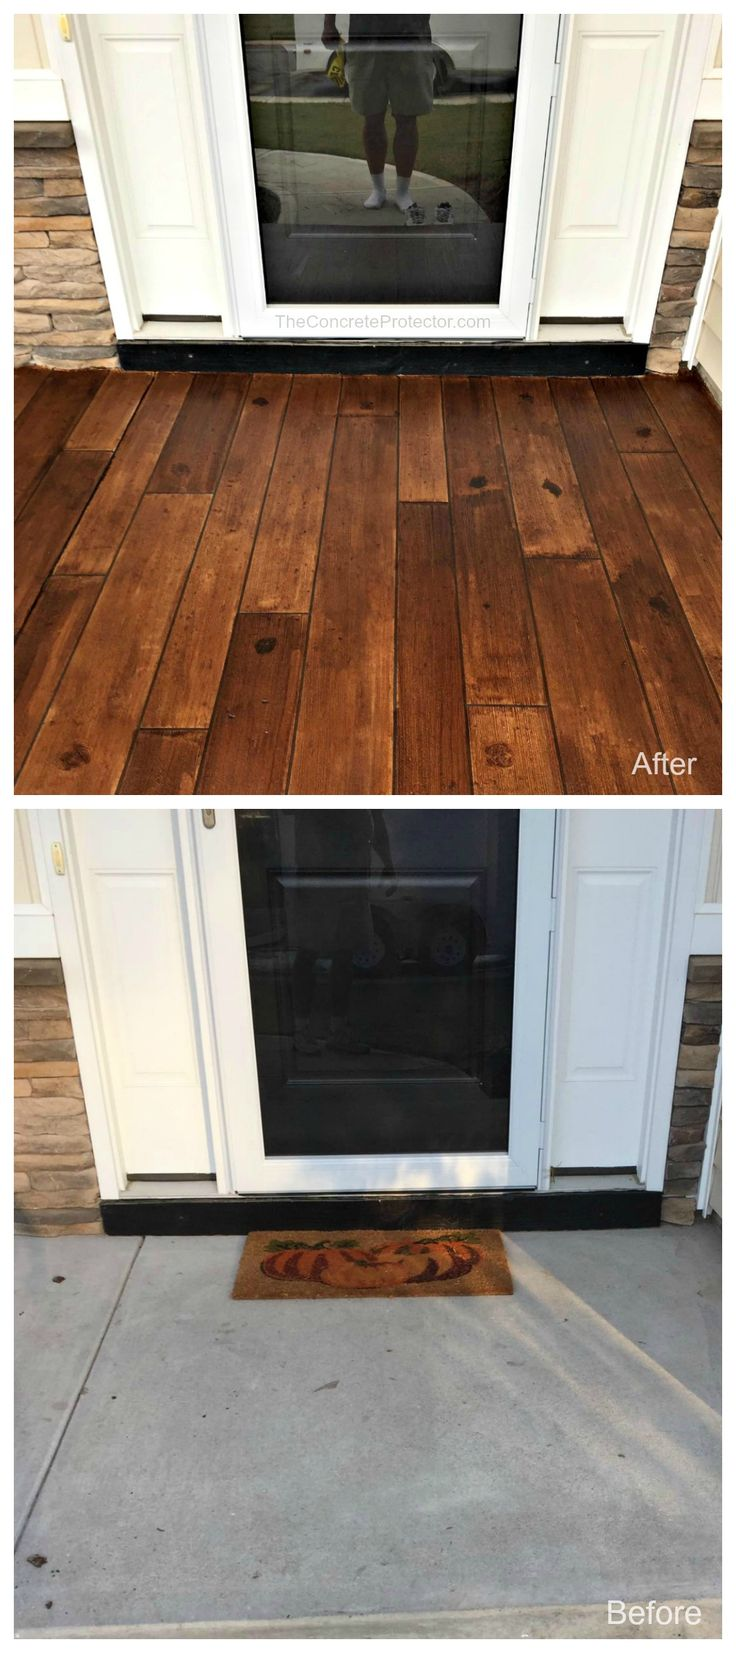 Rustic Concrete Wood Front Porch Makeover - The Concrete Protector